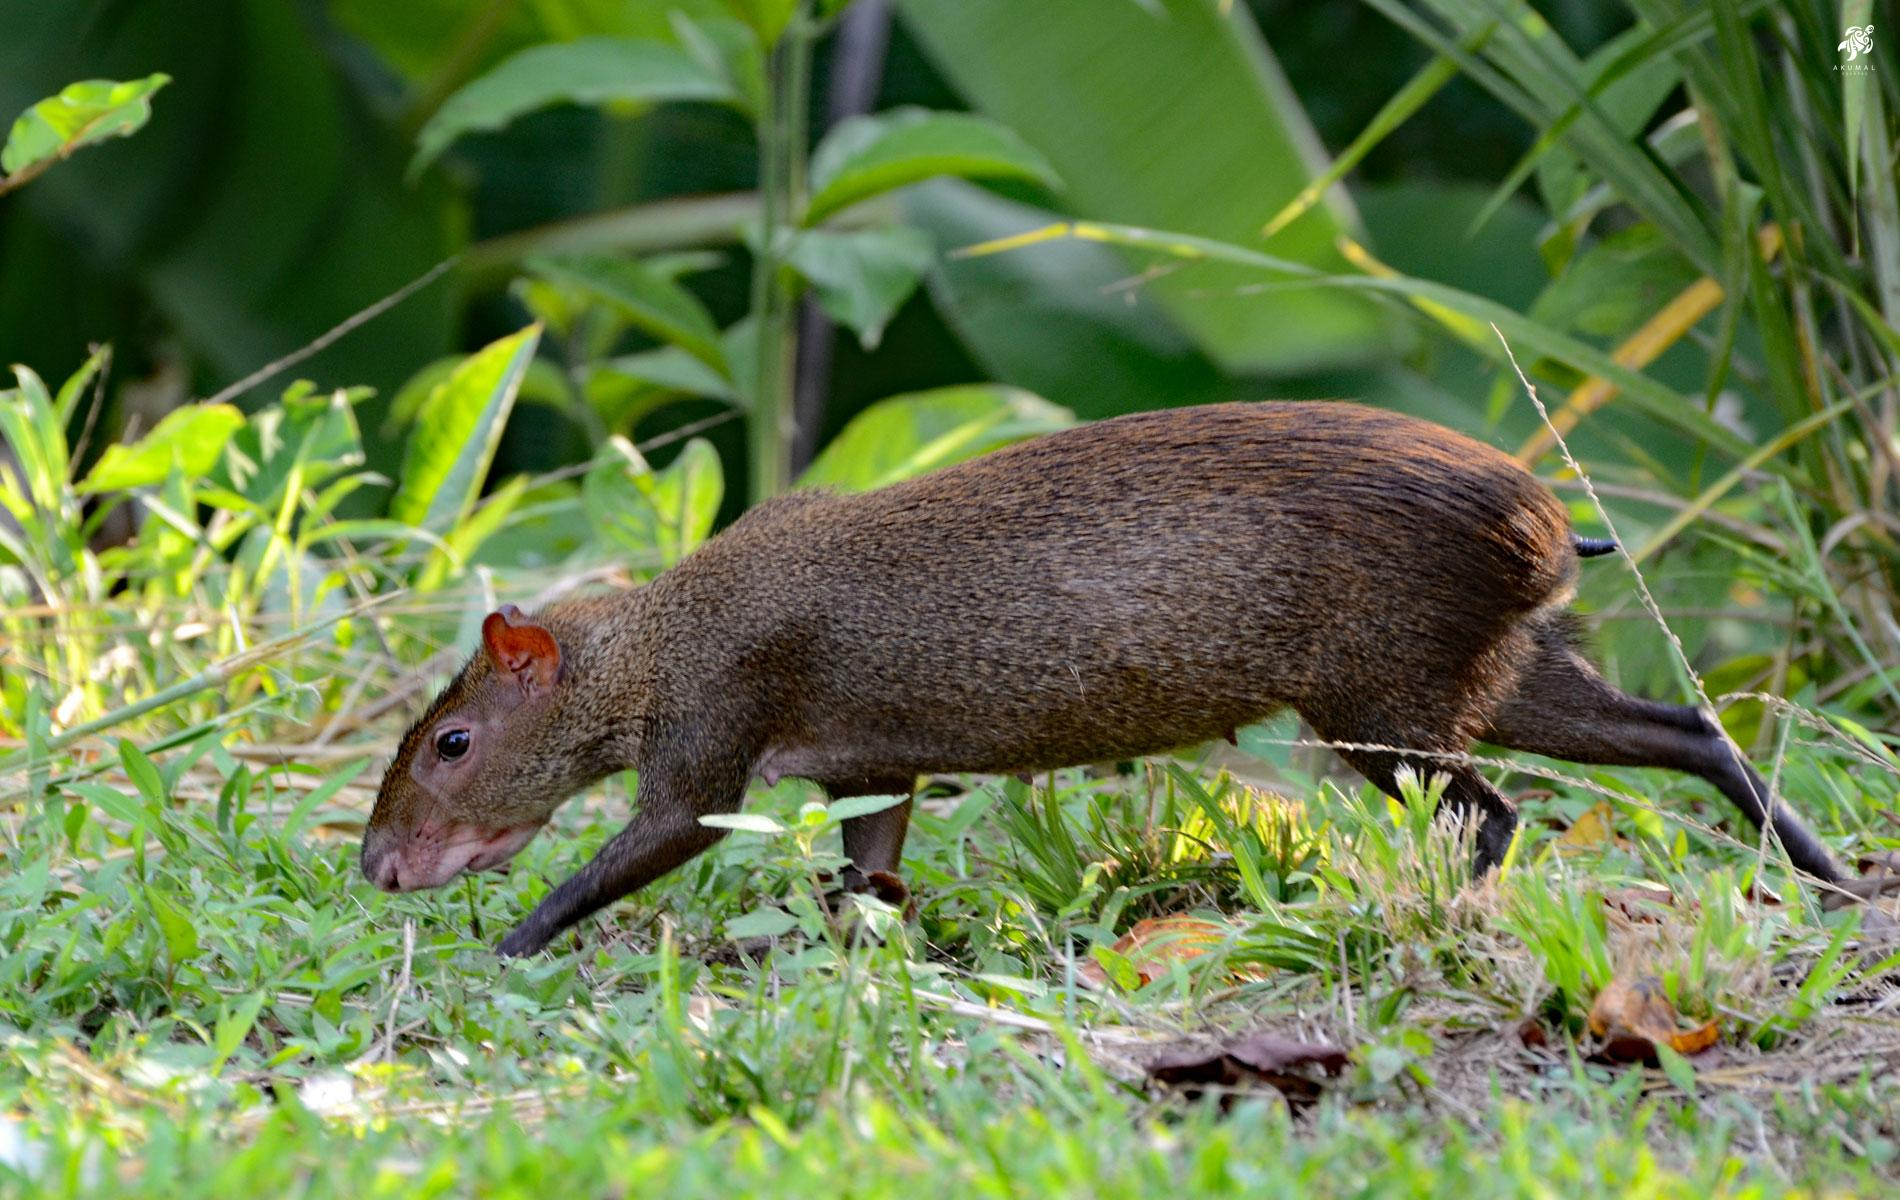 One of our local Residents: An agouti making the rounds in our gardens